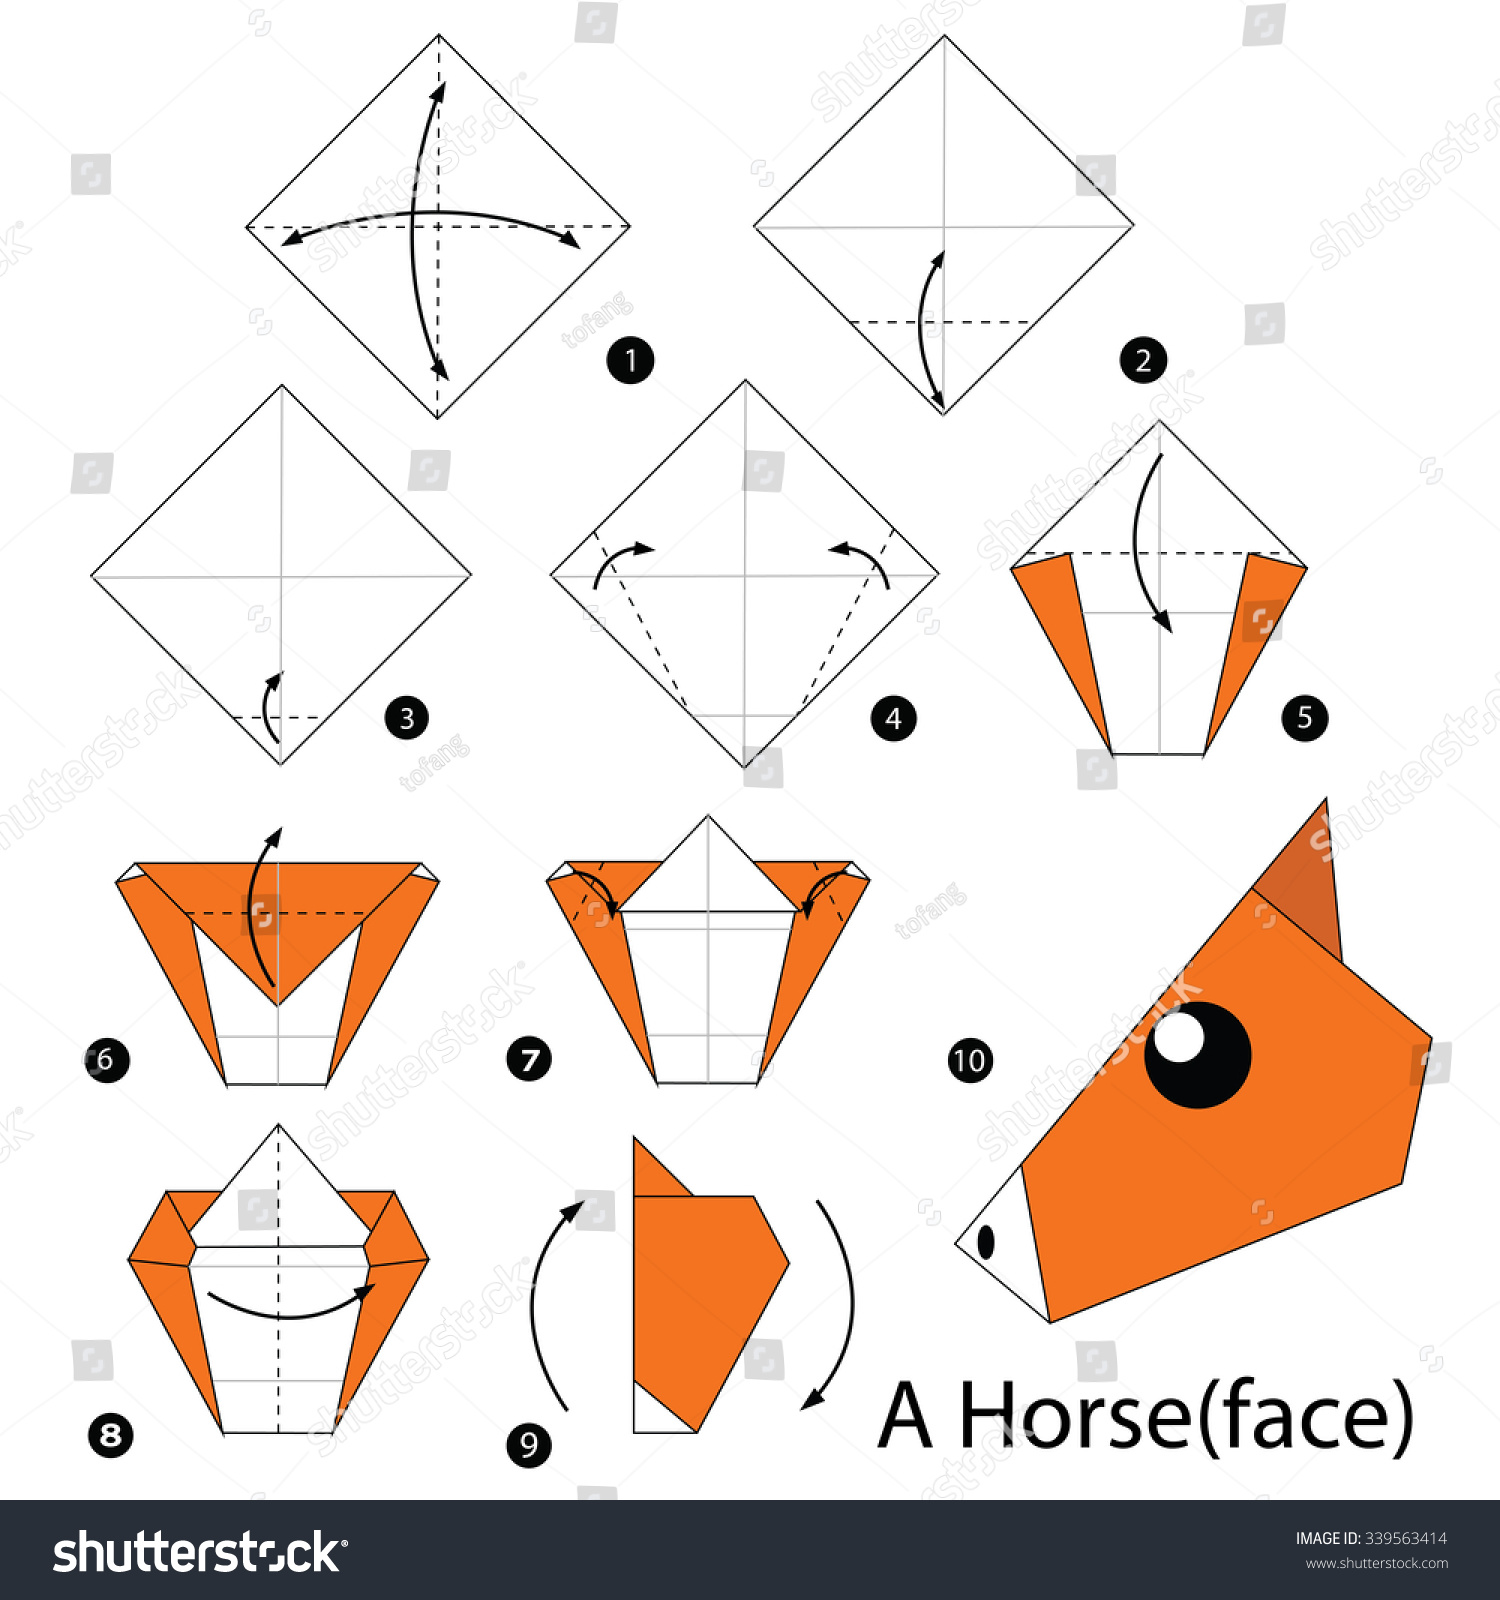 How To Make An Origami Horse - YouTube | 1600x1500